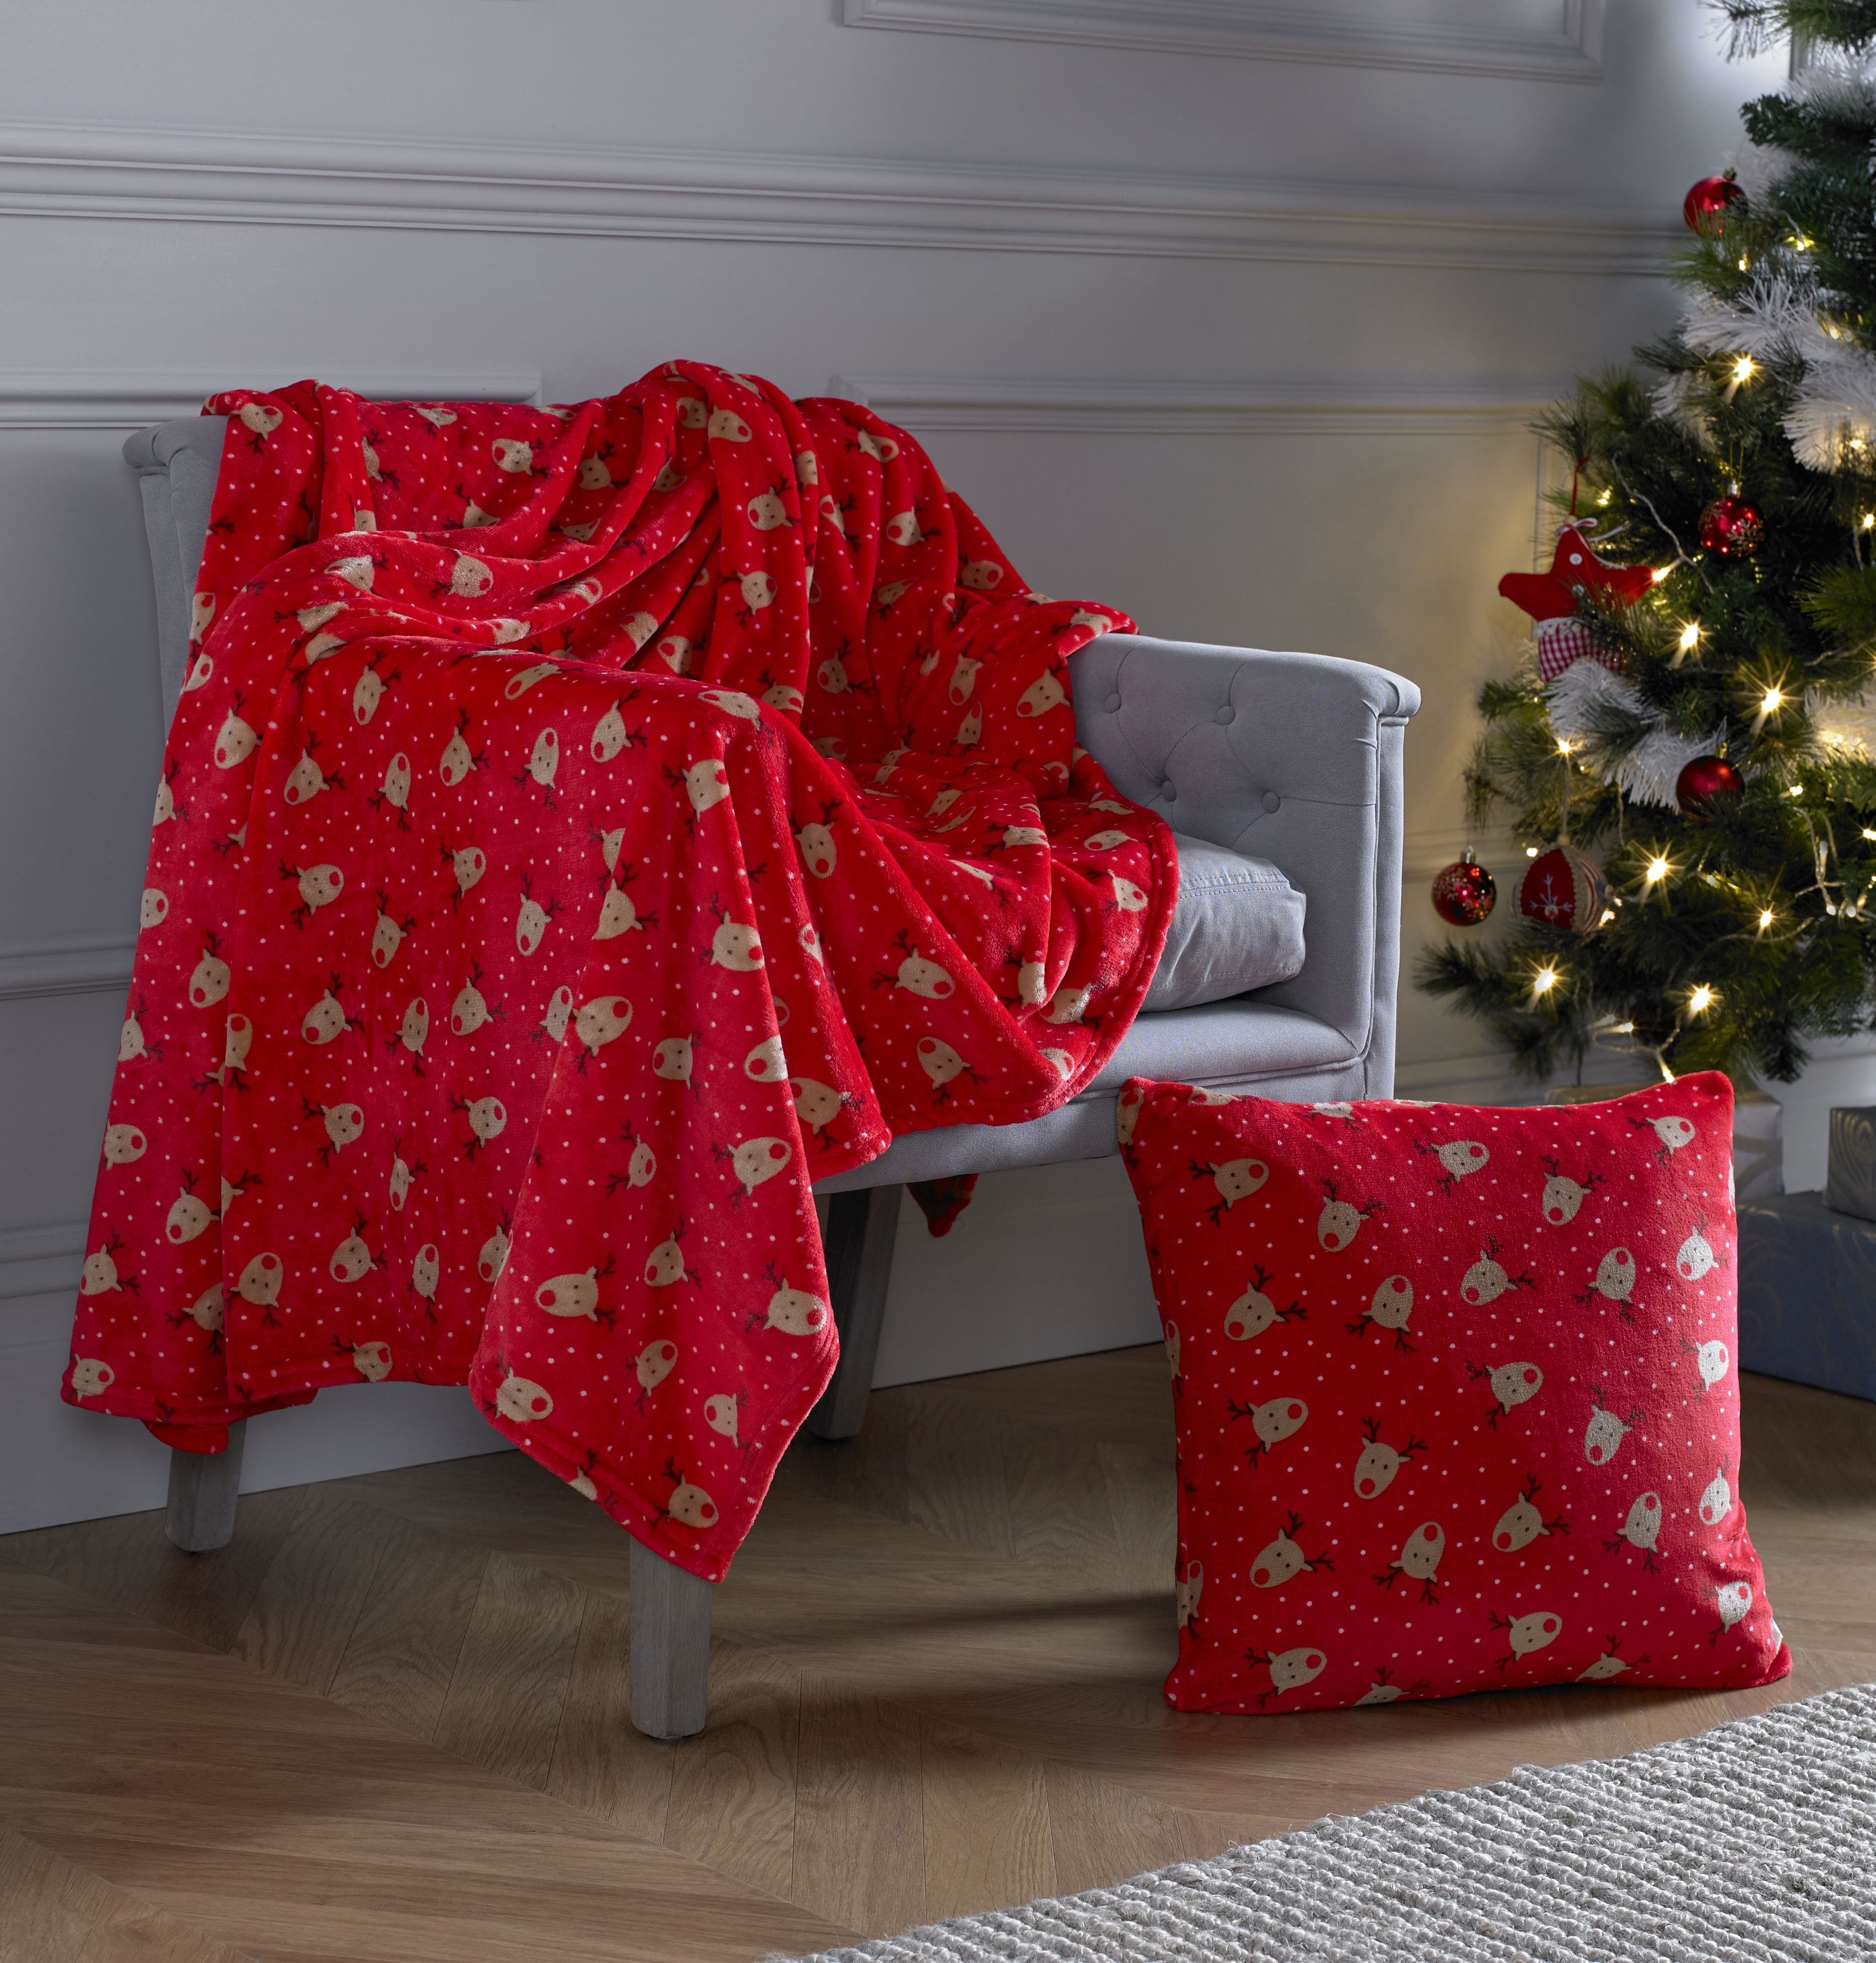 Throwing A Christmas Party At Home: Curtains At Home